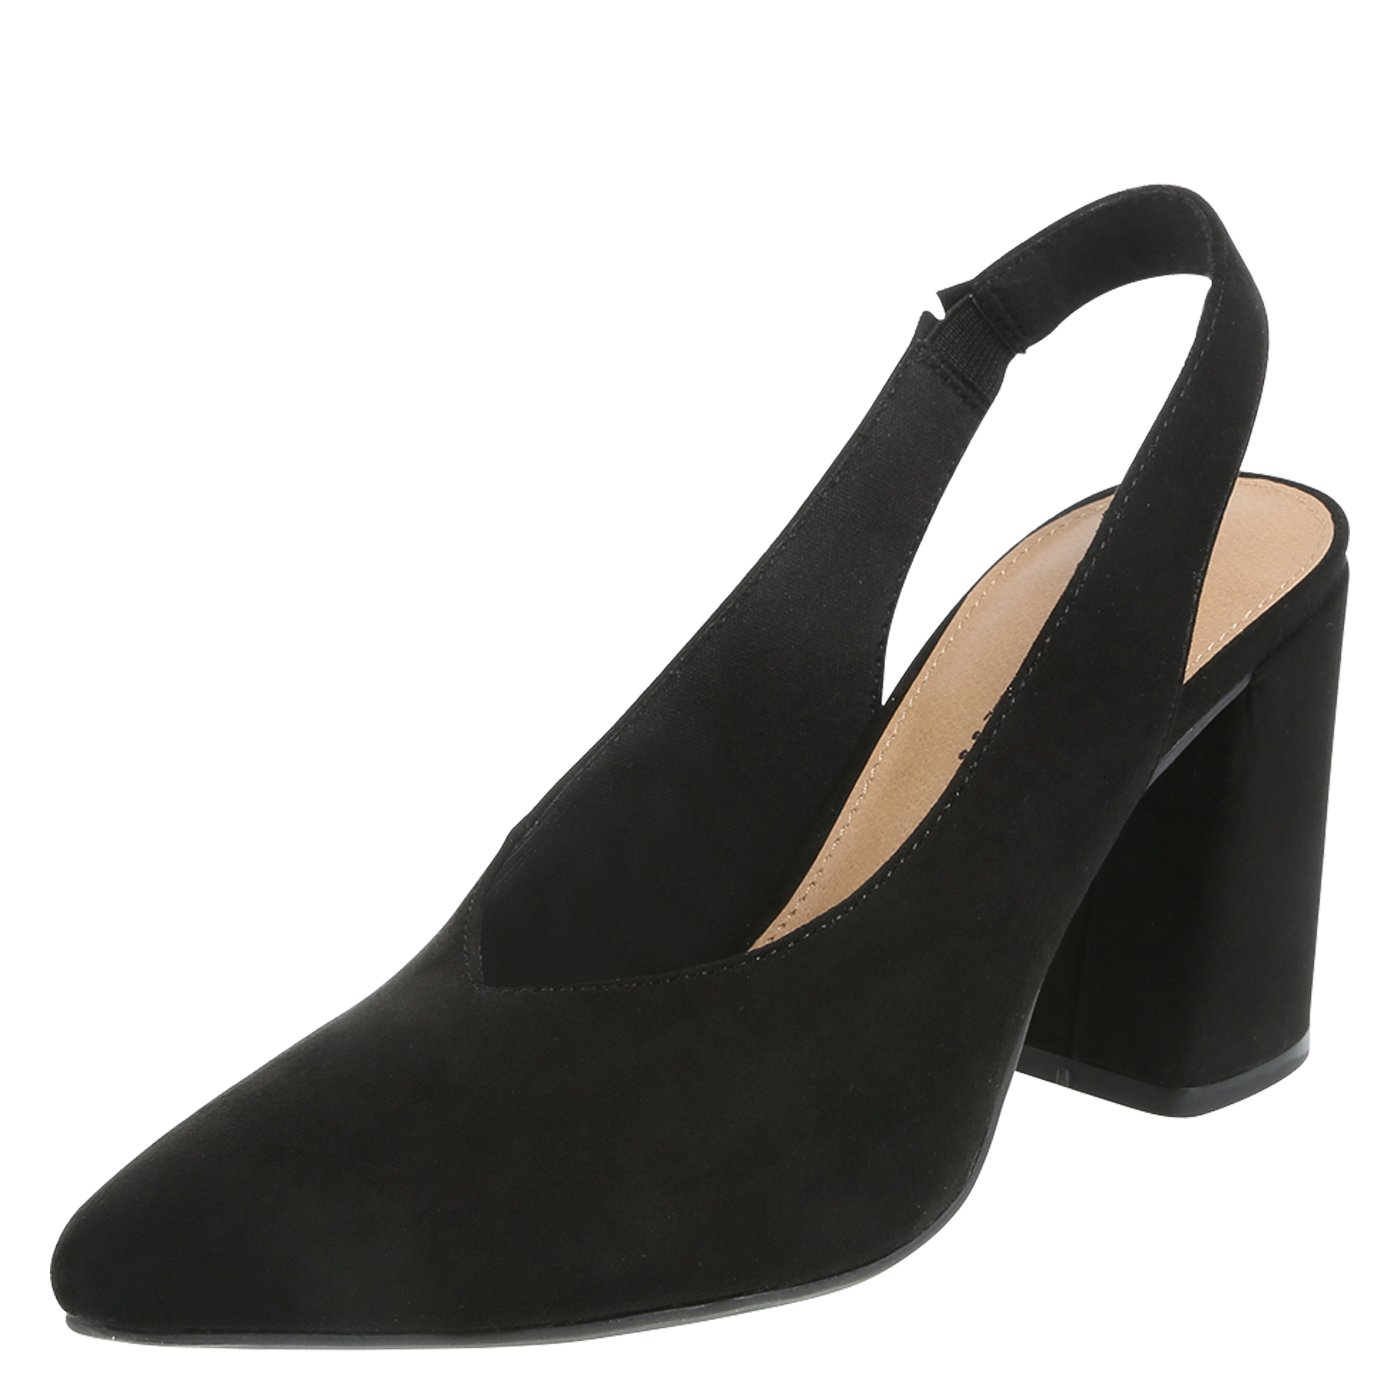 Christian Siriano for Payless Black Suede Women's Palmer Flared Heel Slingback 9.5 Regular